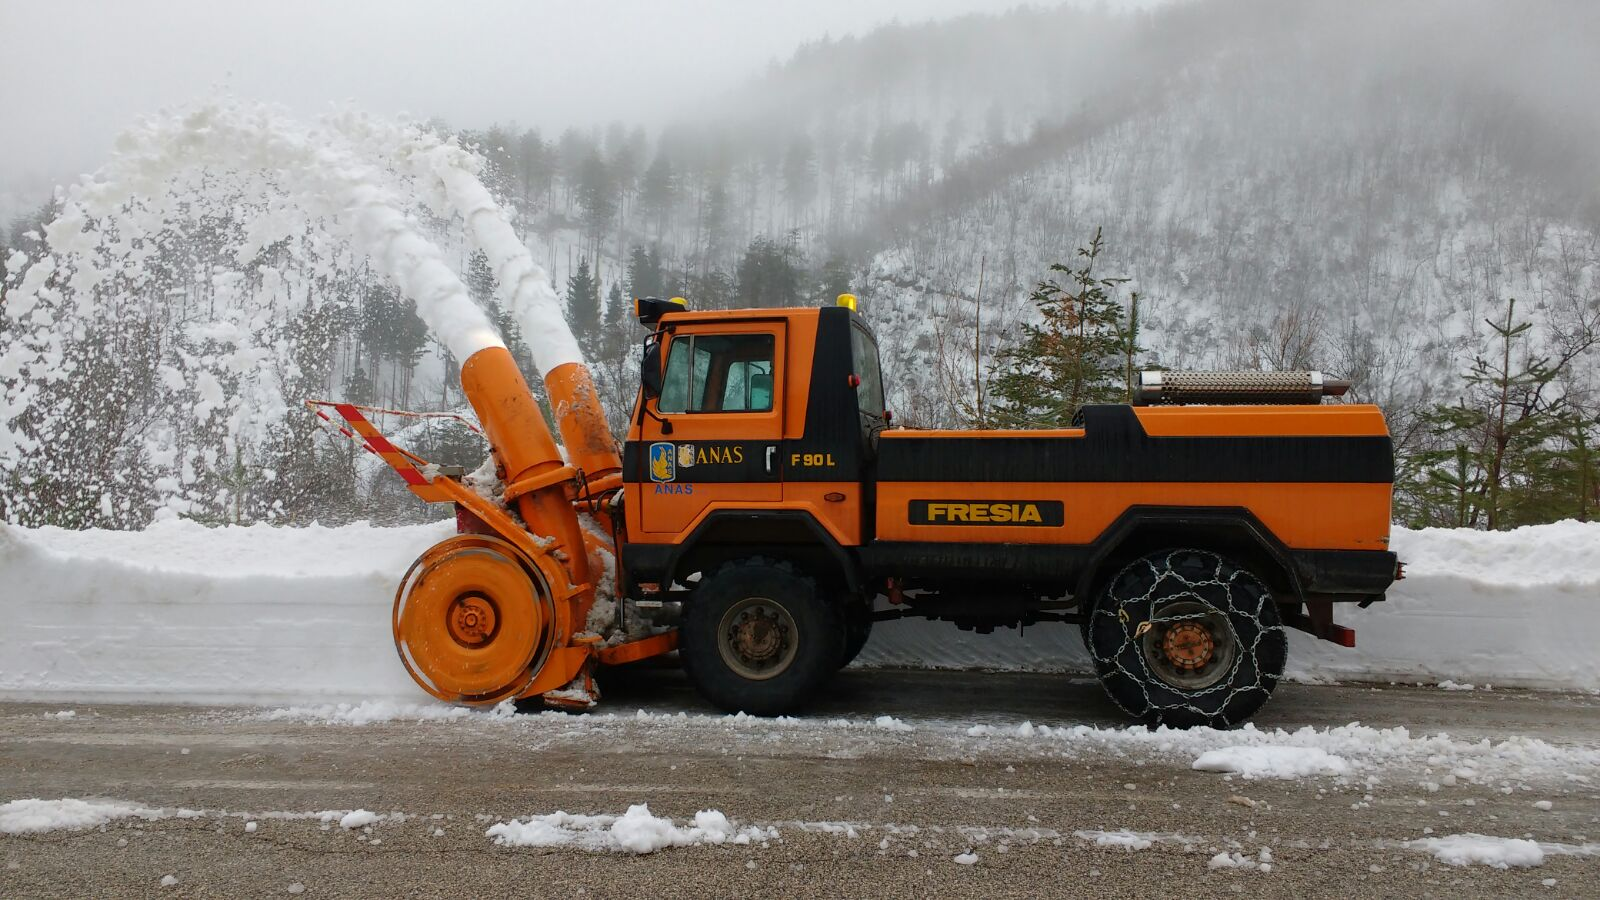 Picture of a truck mounted snow blower